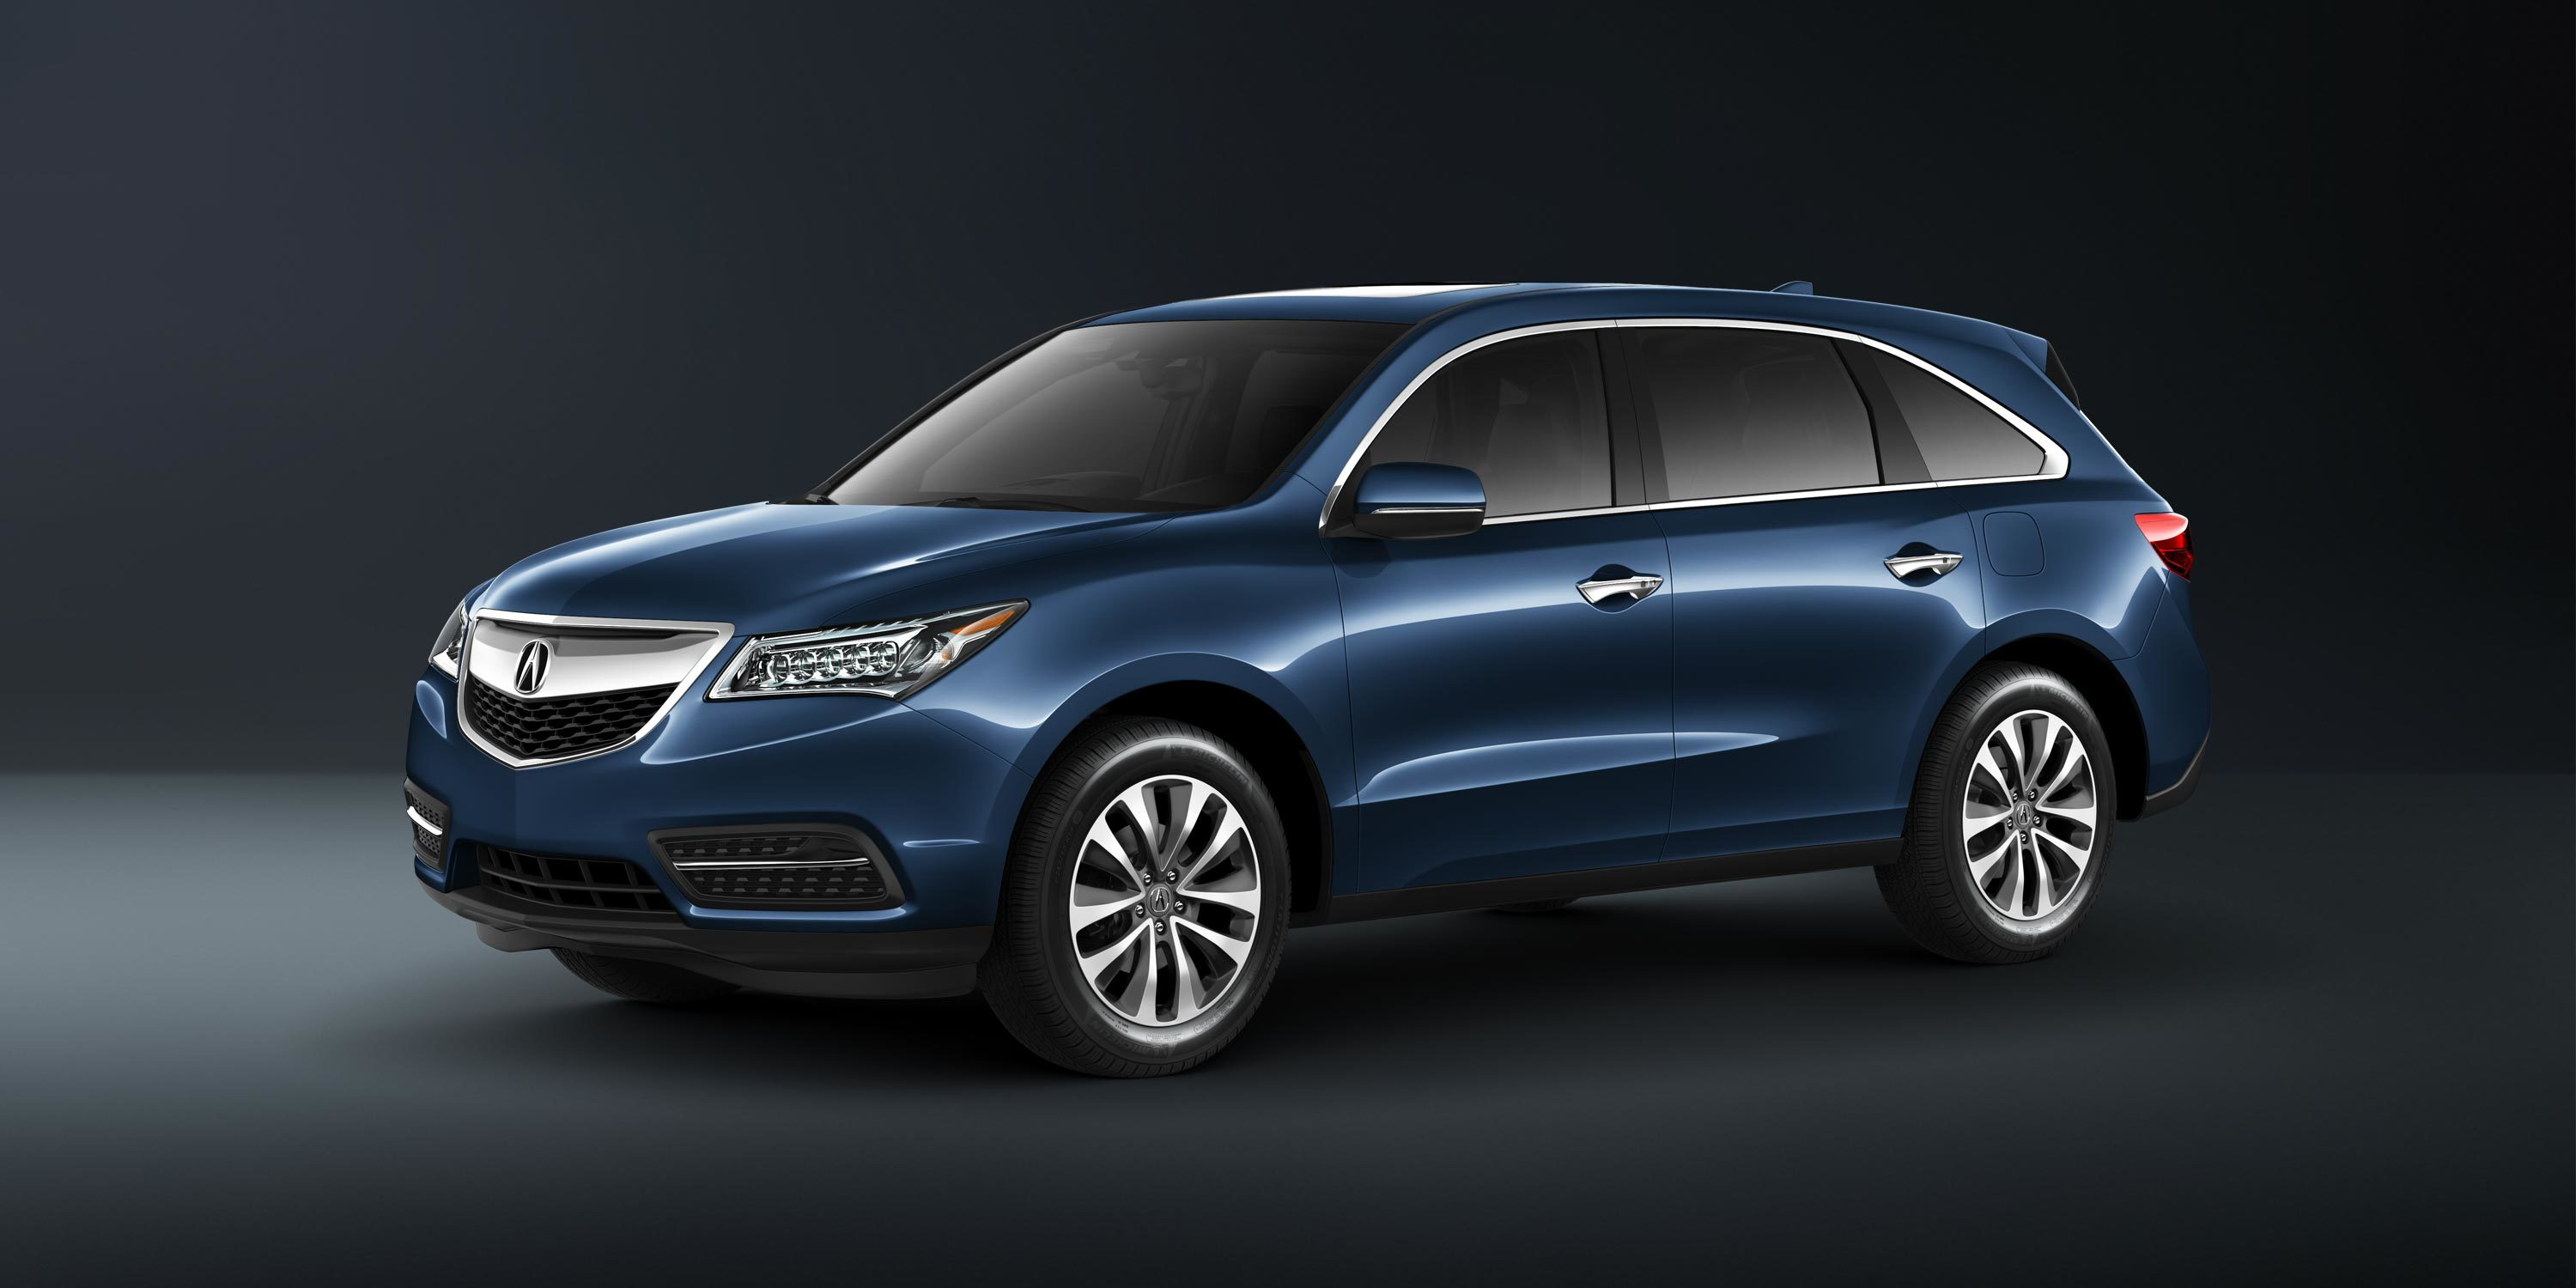 image than more raised price en honda canada at release newsnext indy newslist makeawish view acura for mdx news toronto larger